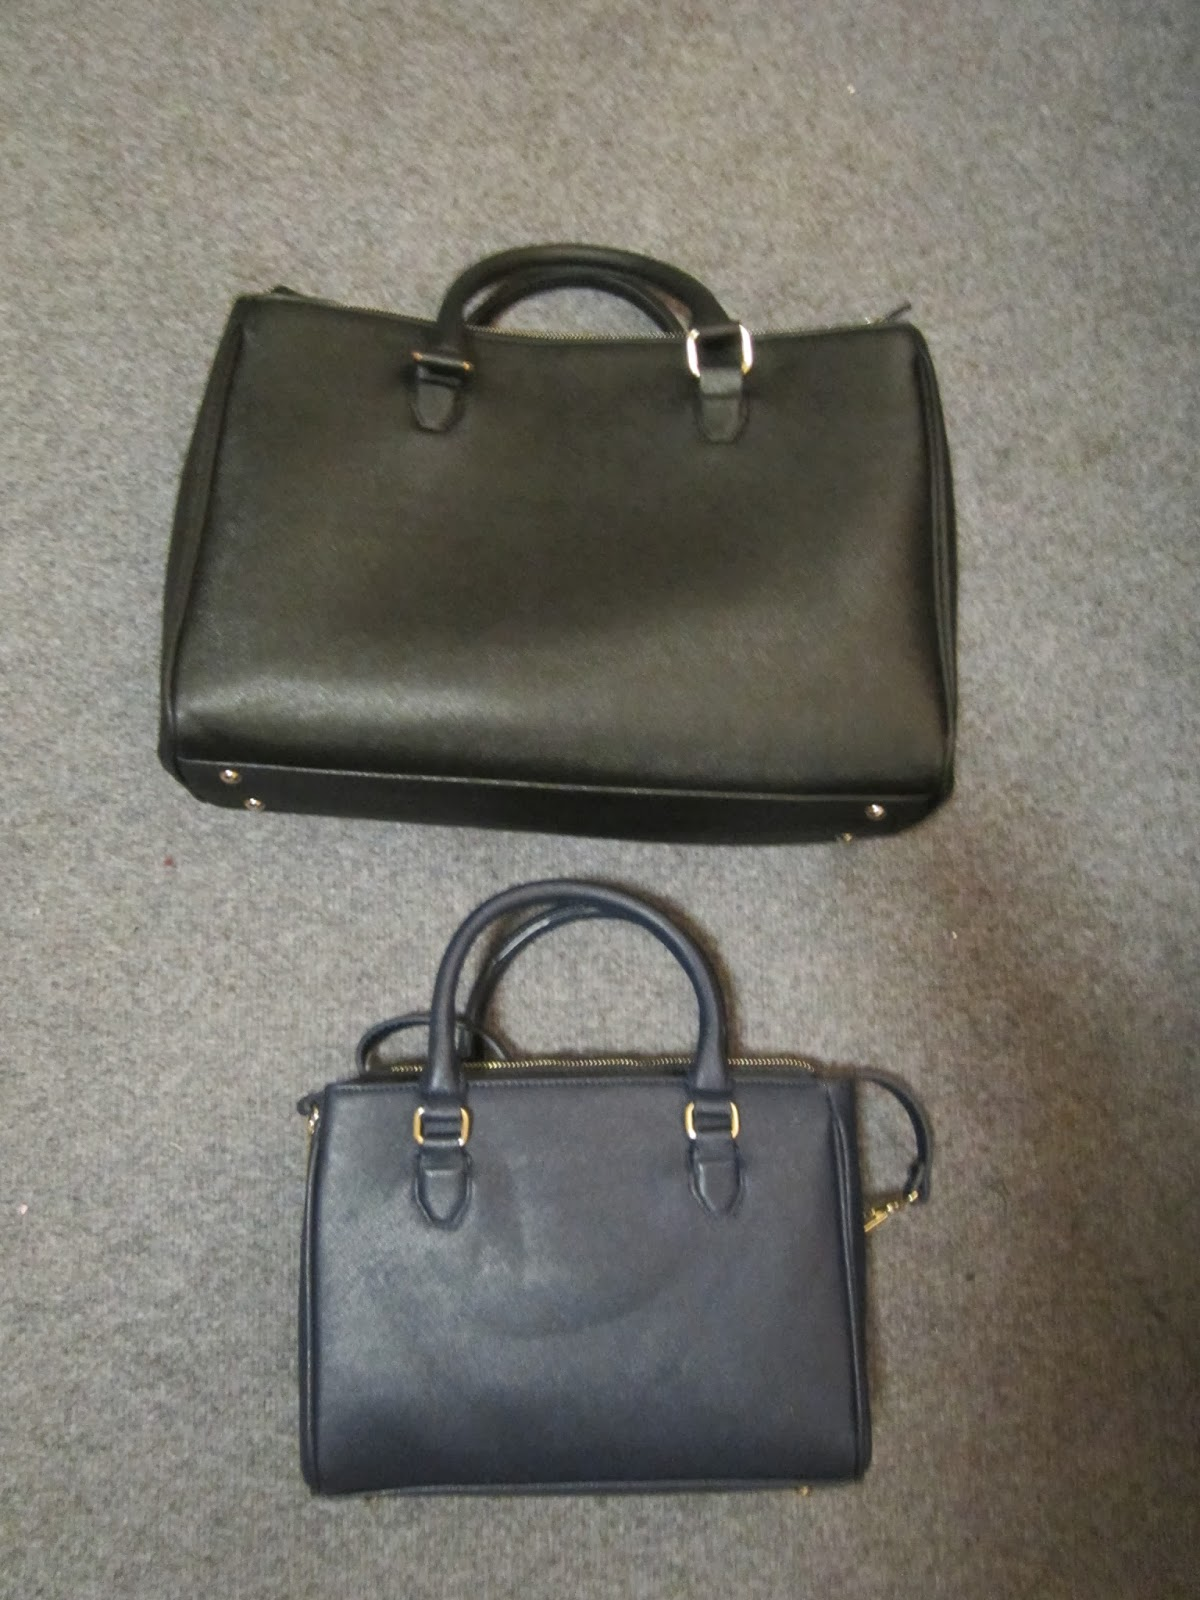 98d59bd5ec The top one is the Citybag with zips costs £59.99 and on the bottom is my  current new everyday bag - Mini Office City ...